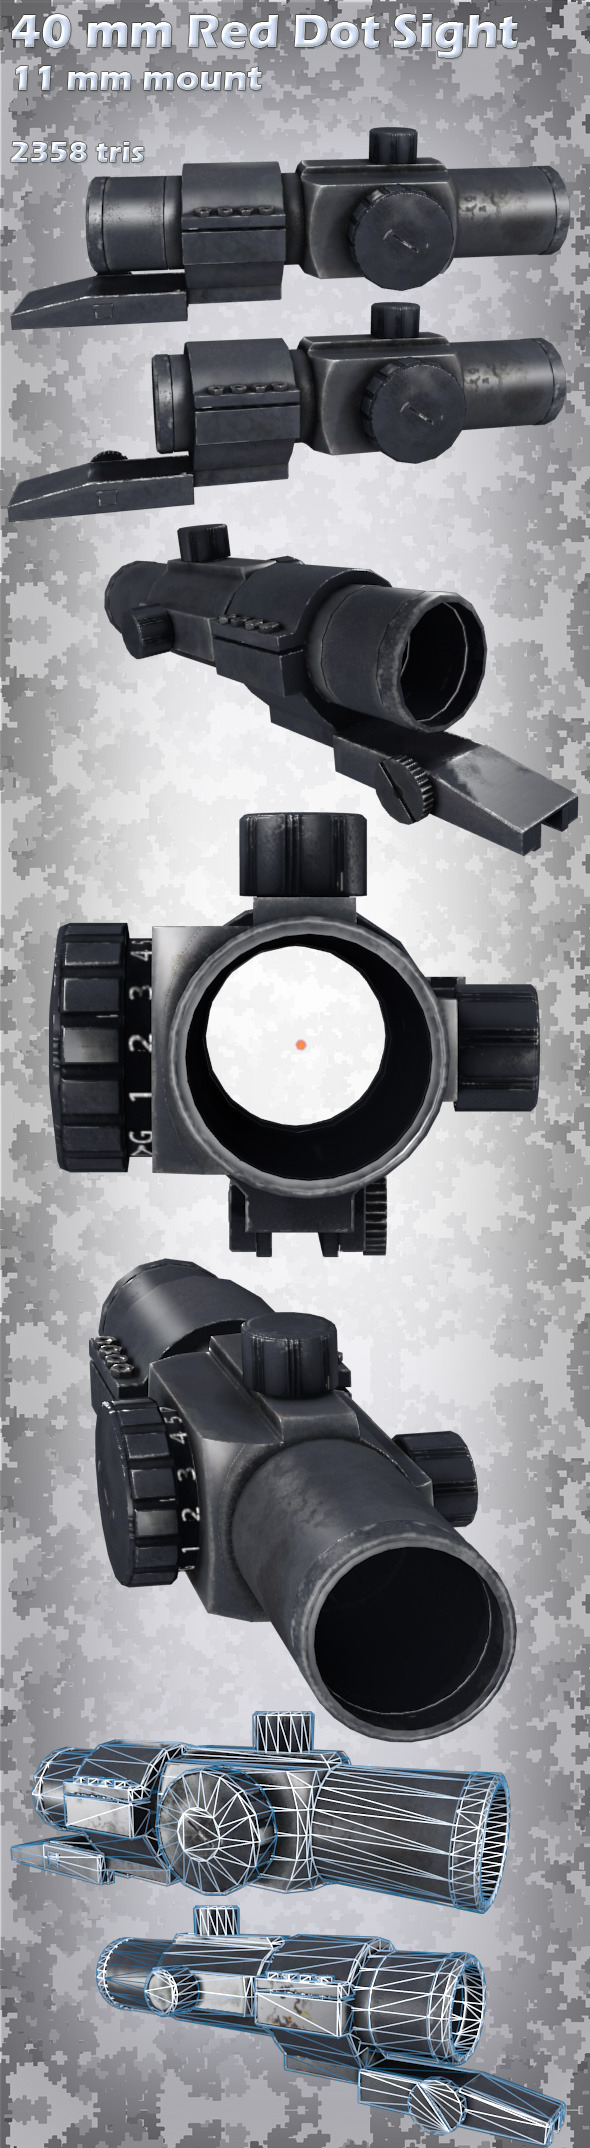 3DOcean 40mm Red Dot Sight with 11mm mount 4097529